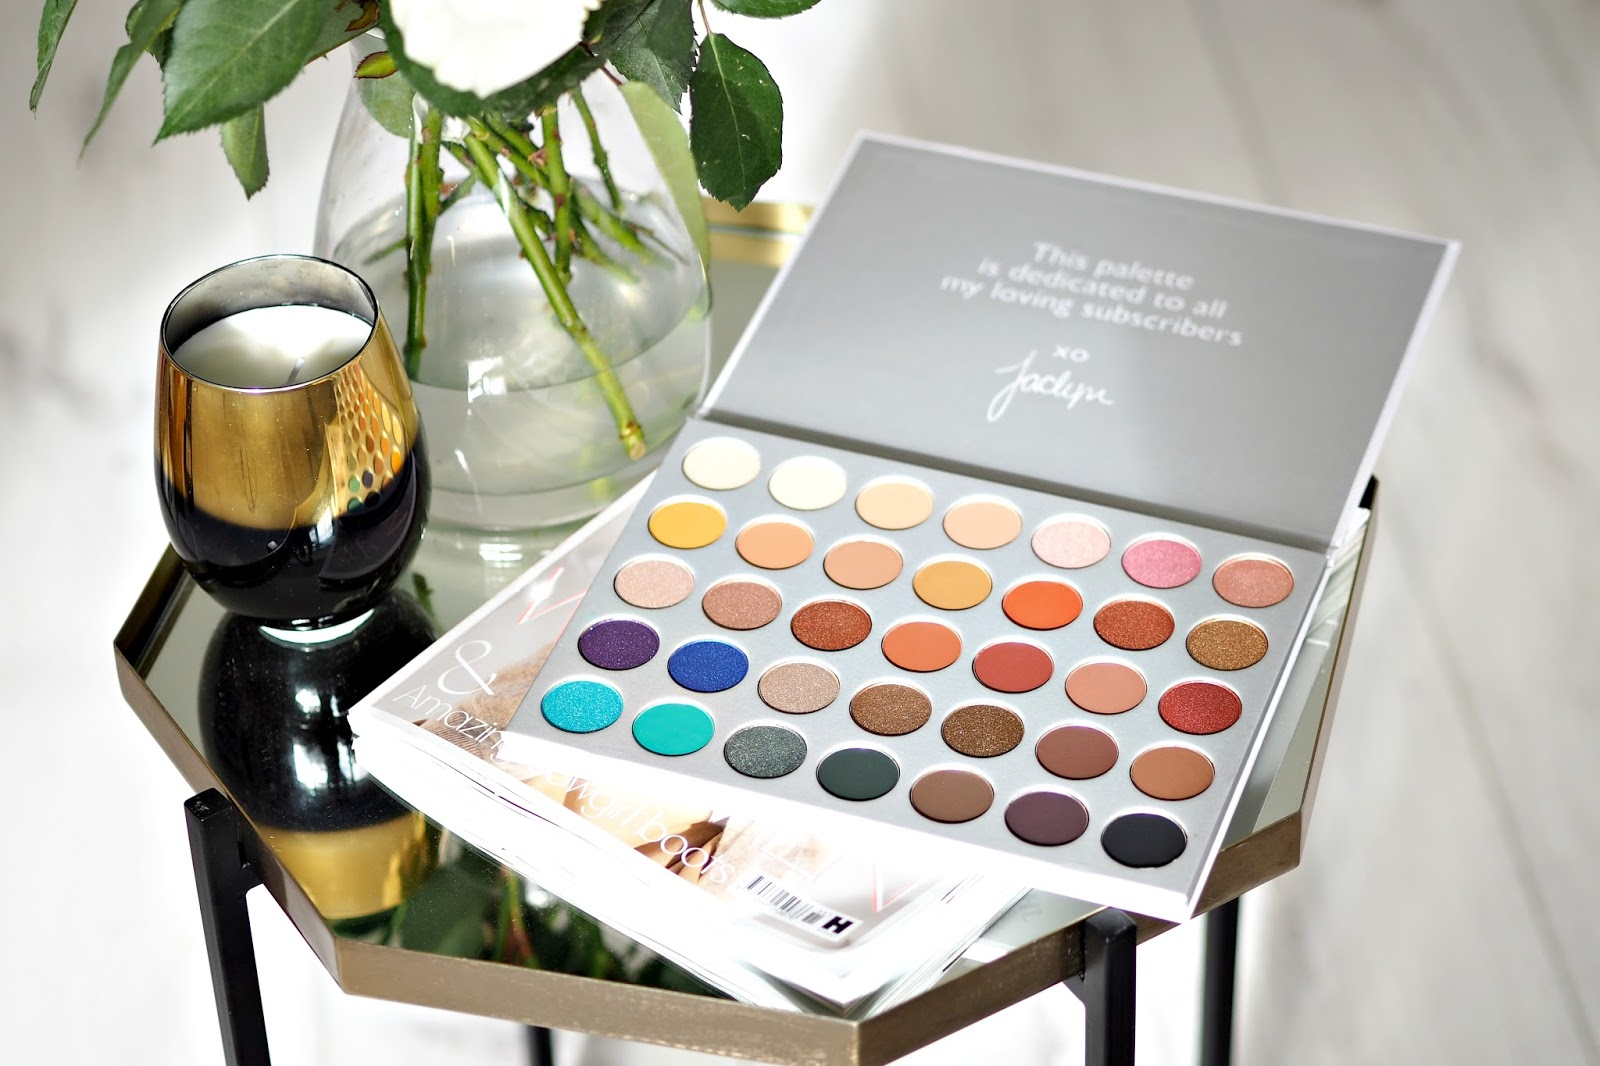 Morphe X Jaclyn Hill Eyeshadow Palette Review & Swatches